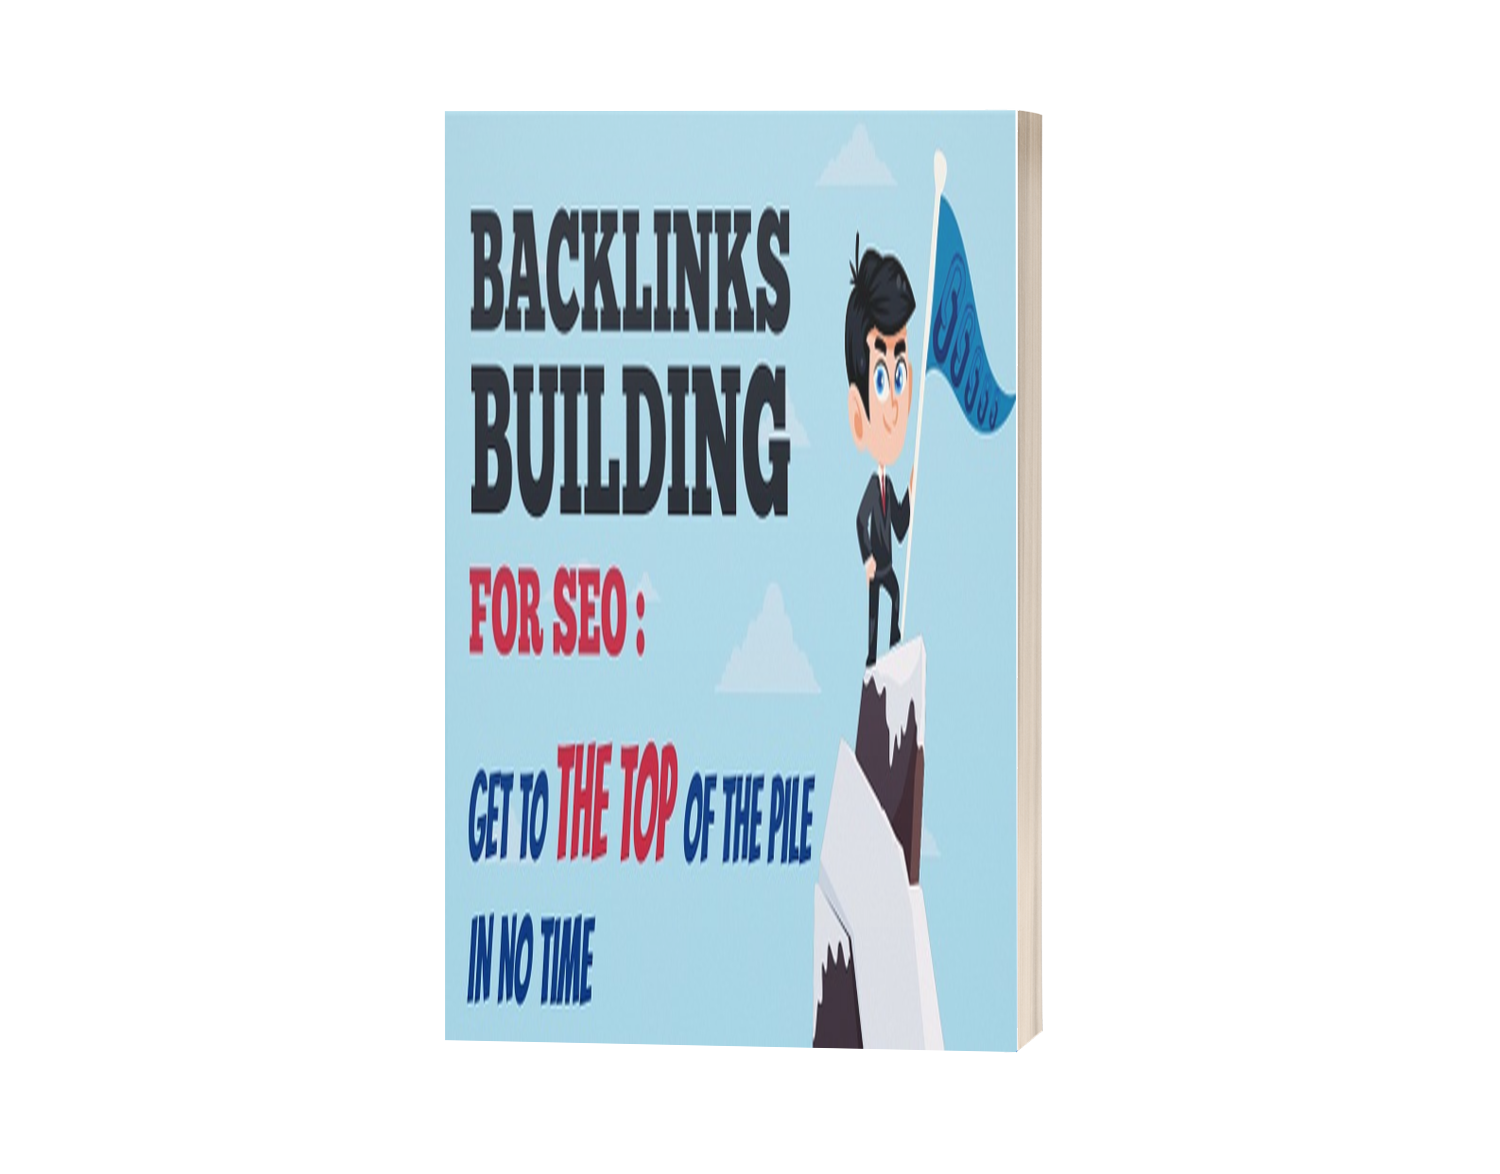 Backlinks Building for SEO